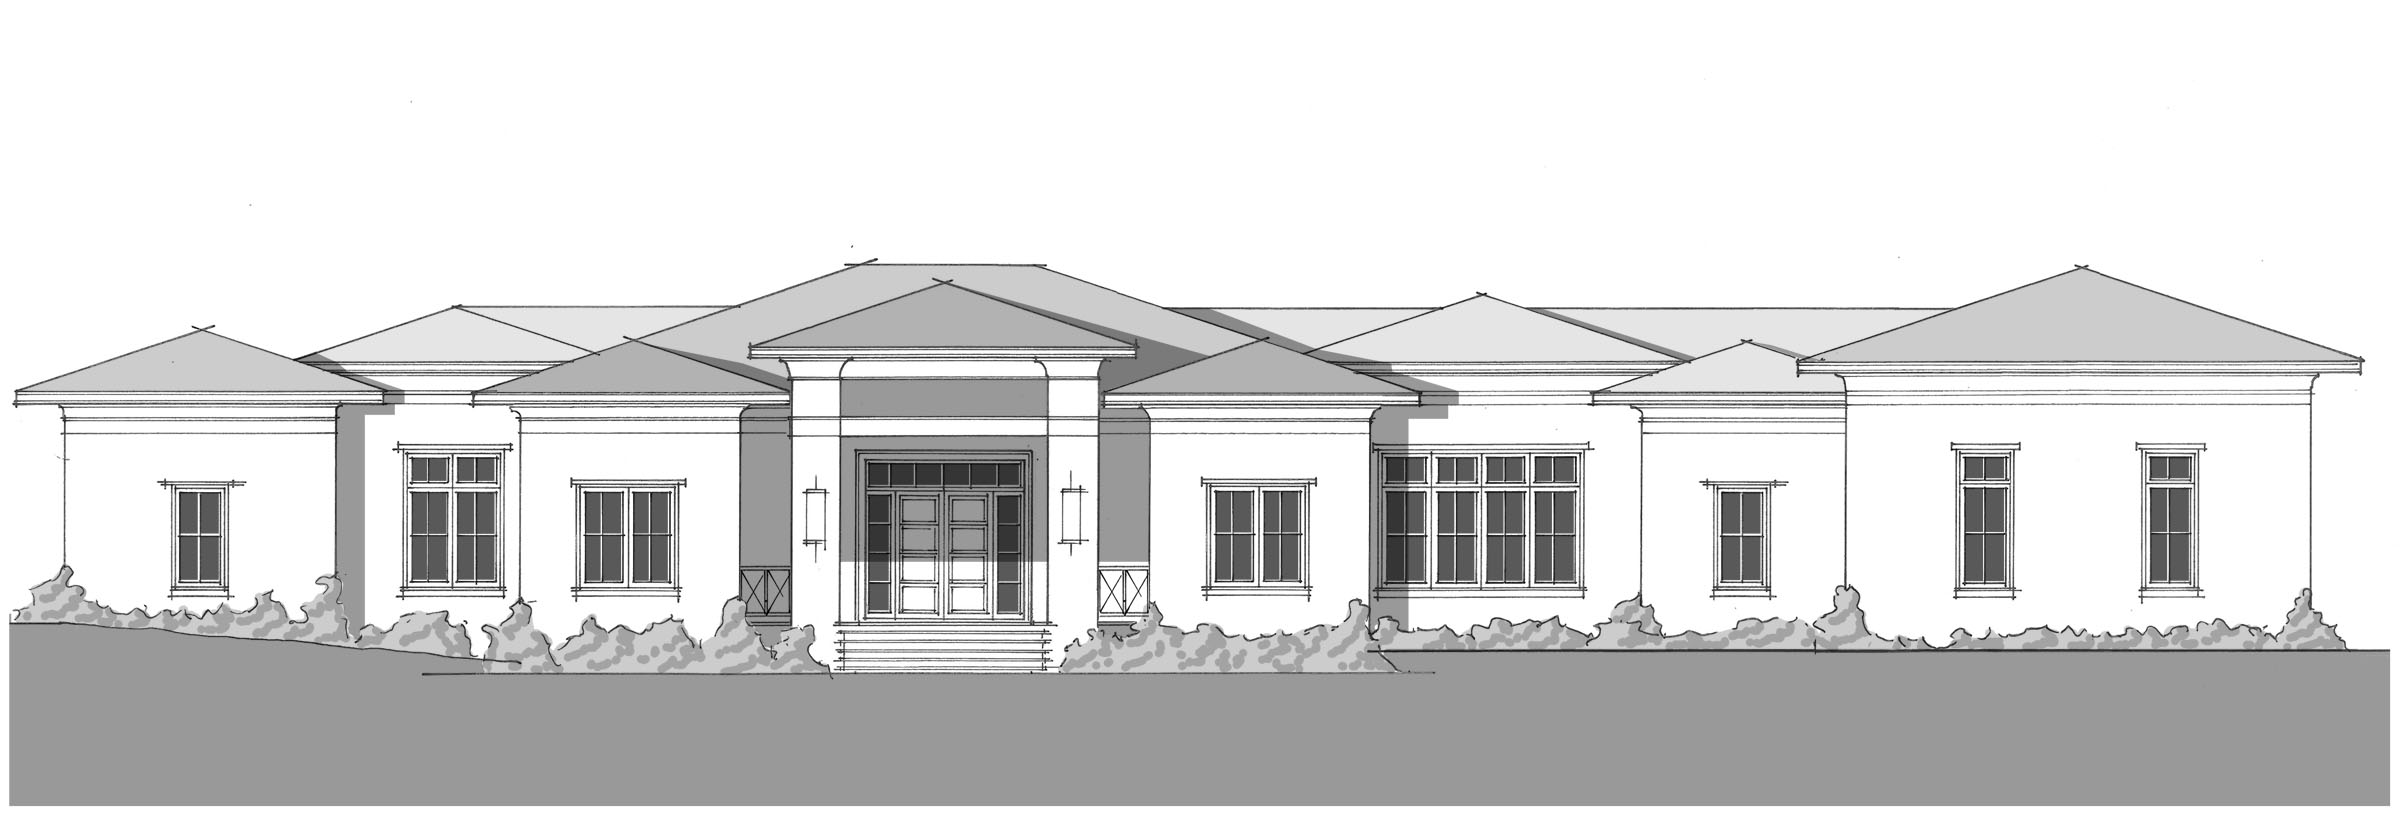 Johns Residence - Front Elevation_2400